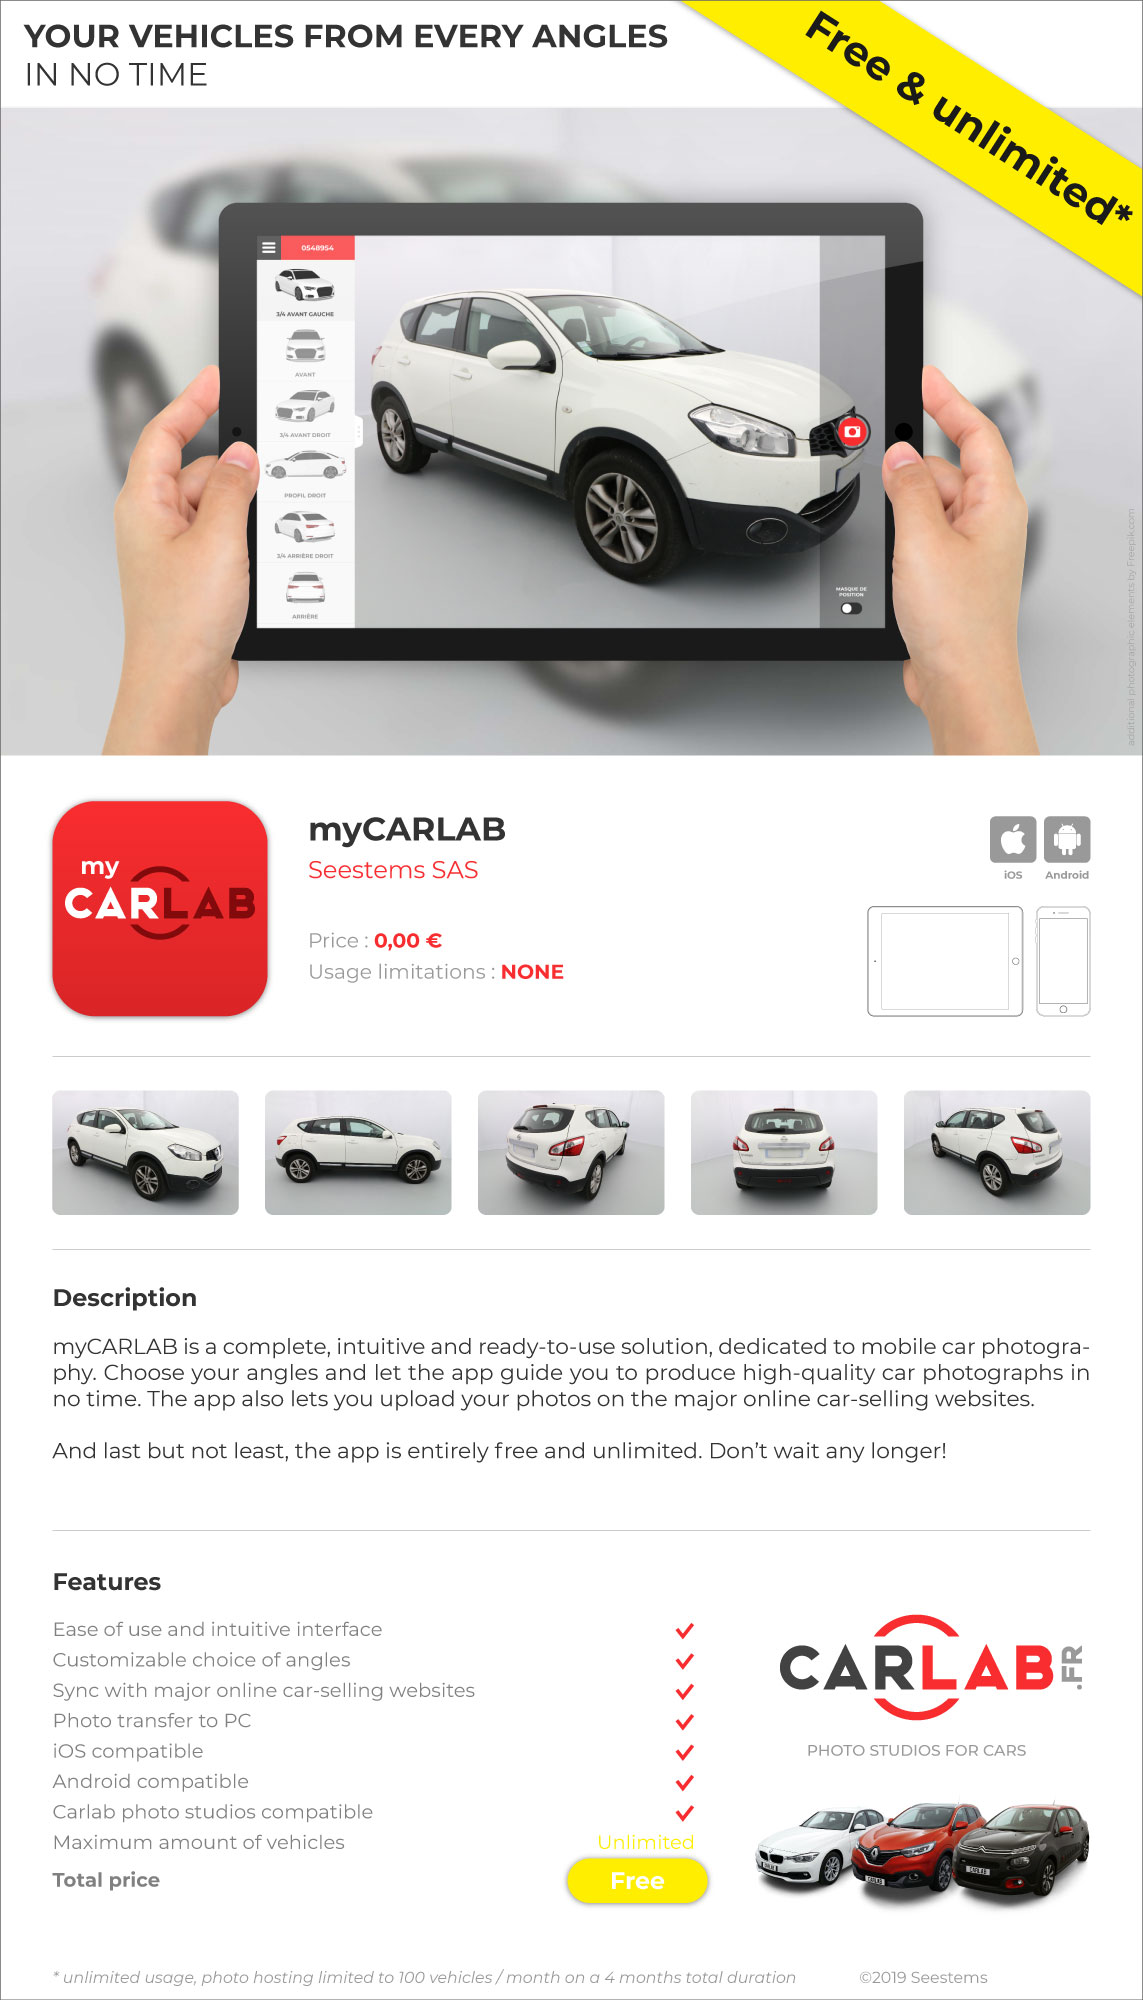 img mycarlab mobile car photography app stor carlab photo studios for cars